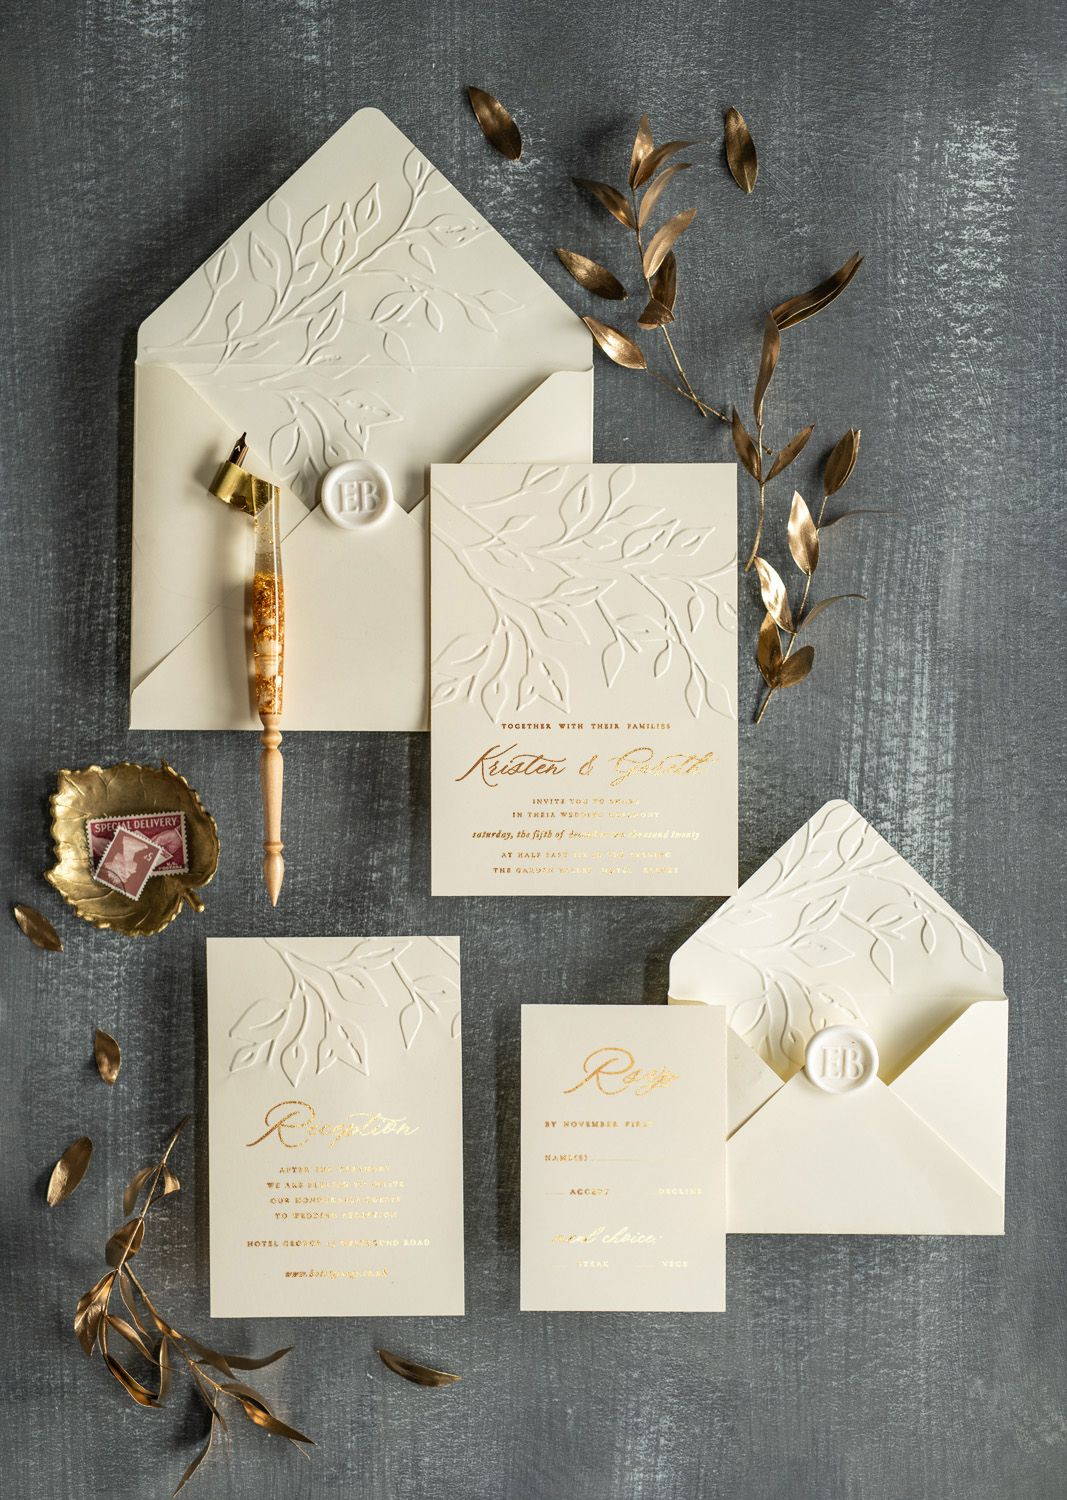 wedding invitations gold / rose gold / silver / glitter 1/wln/z | Gold  wedding invitations, Rose gold invitations, Wedding invitations uk